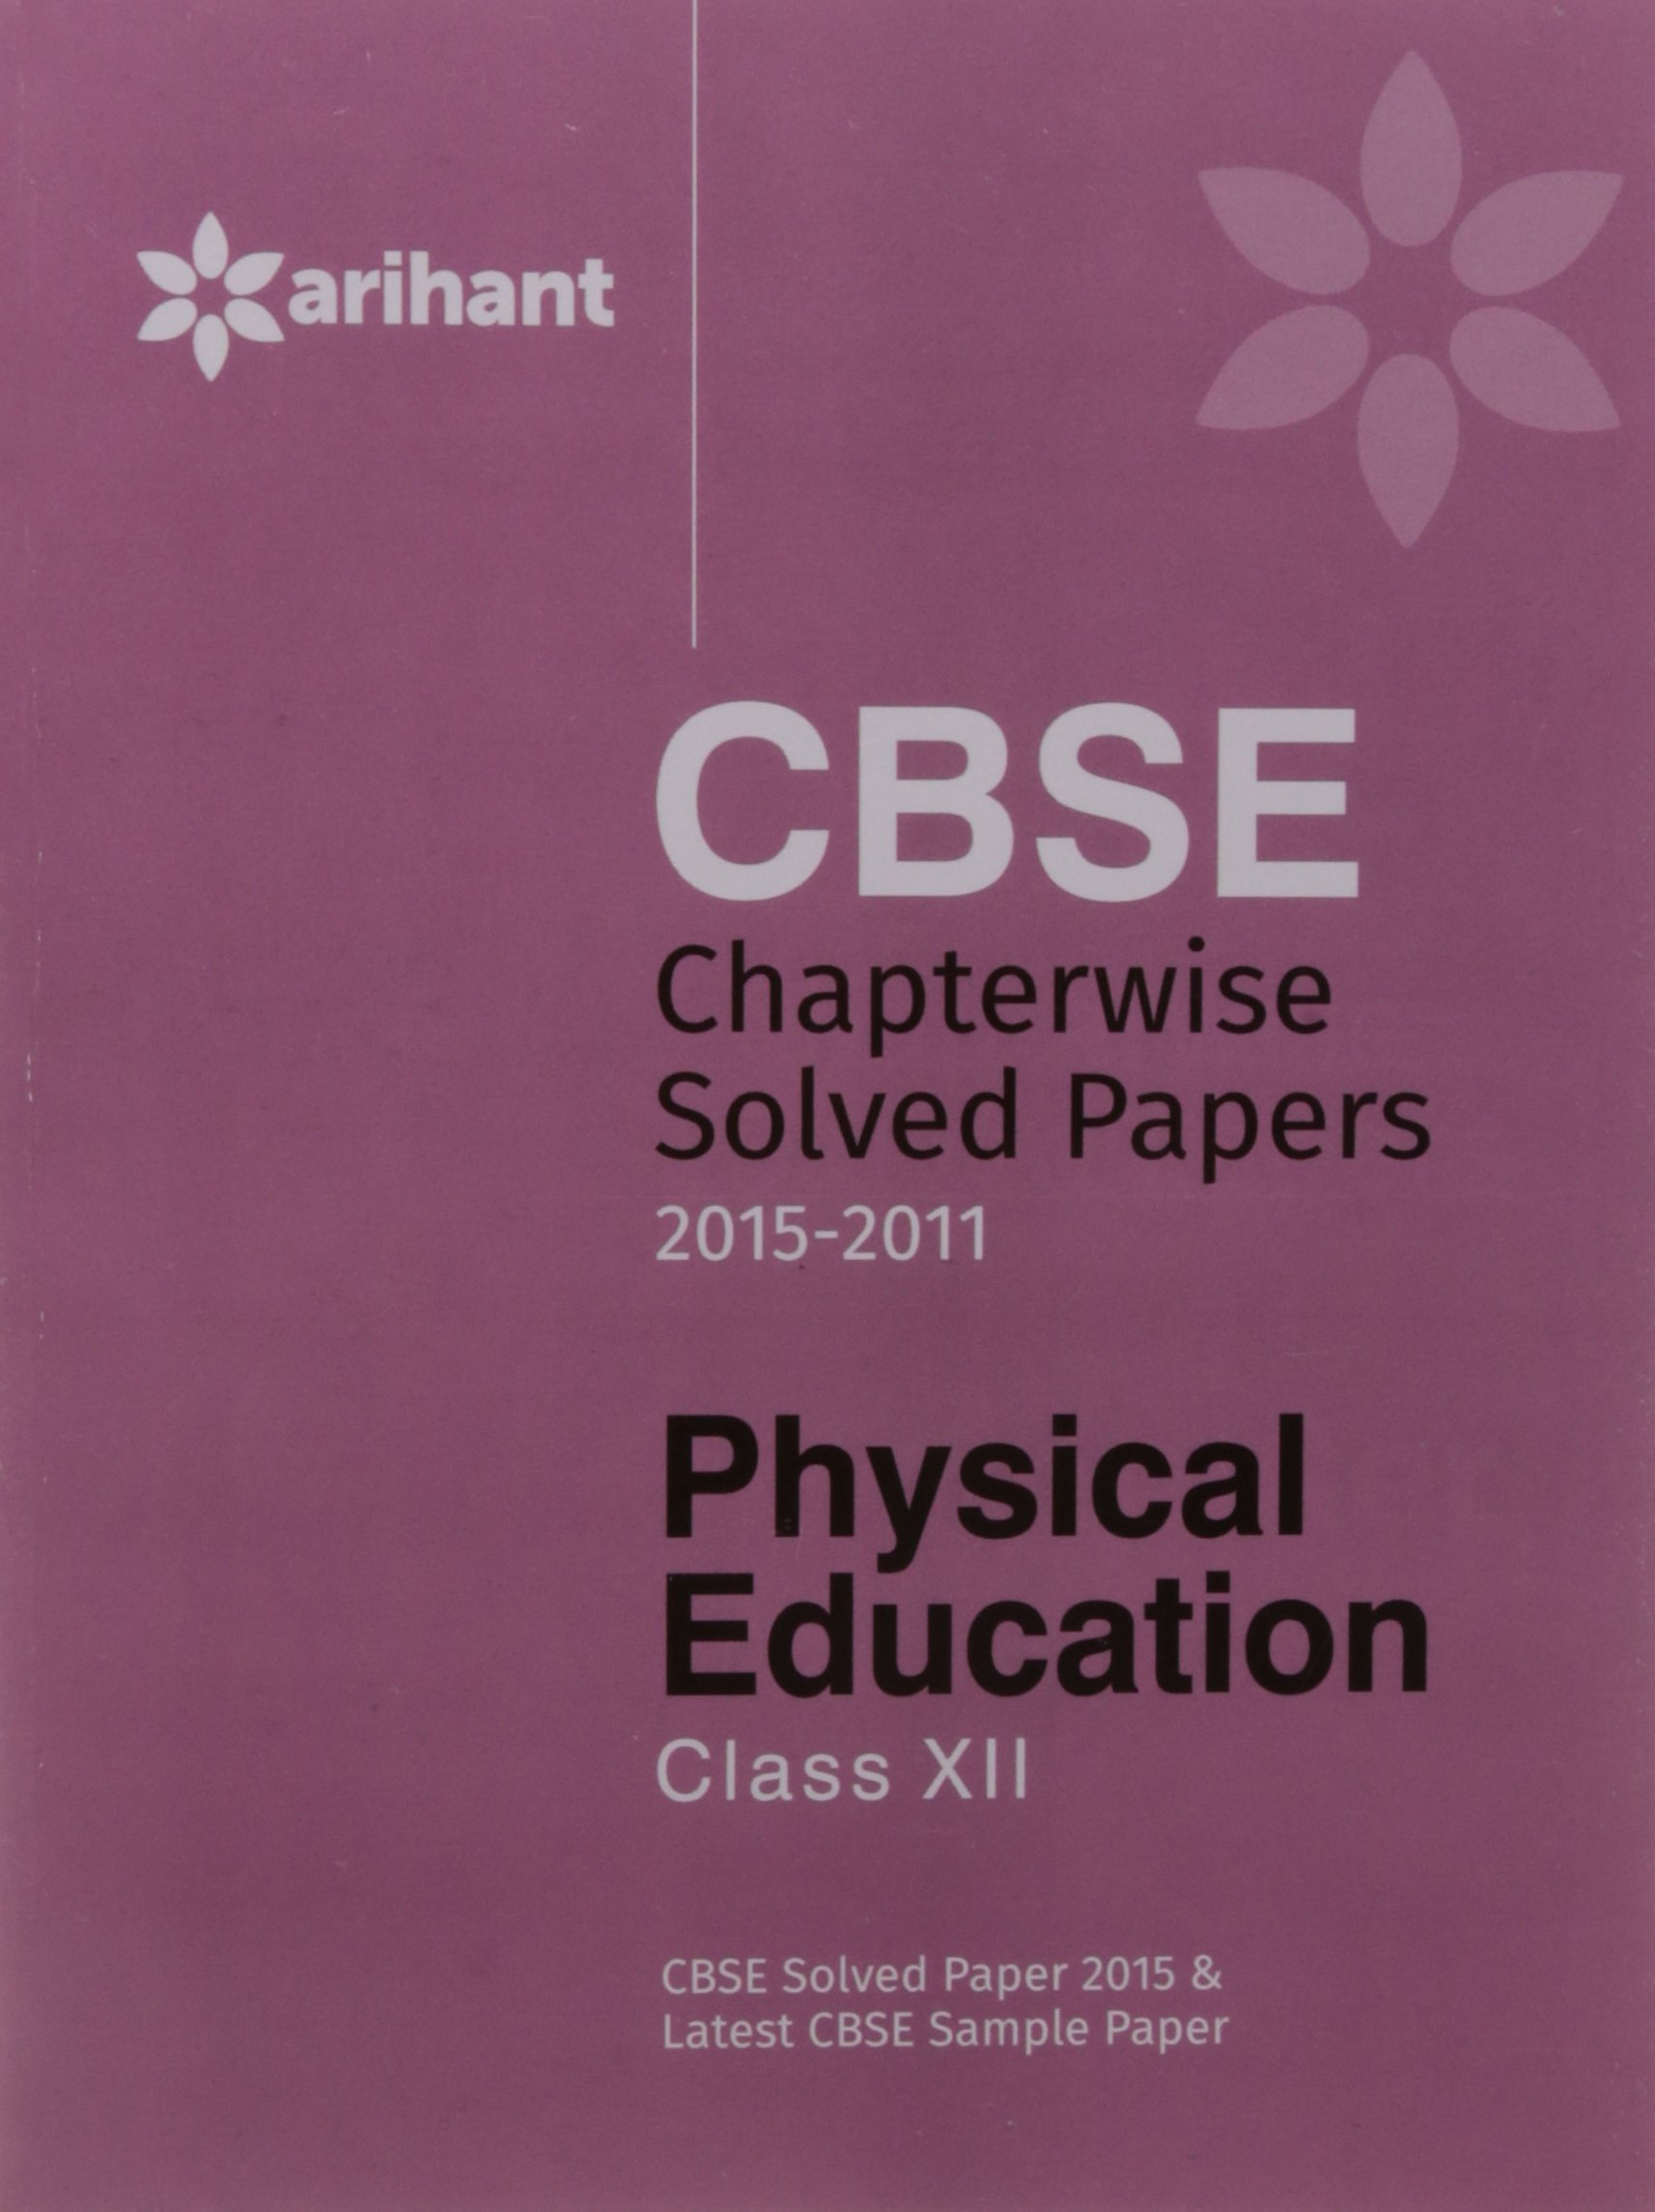 """a paper on physical fitness and physical education in schools Physical education is a formal content area of study in schools that is standards based and encompasses assessment based on standards and benchmarksit is defined in chapter 1 as """"a planned sequential k-12 standards-based program of curricula and instruction designed to develop motor skills, knowledge, and behaviors of healthy active living, physical fitness, sportsmanship, self-efficacy ."""